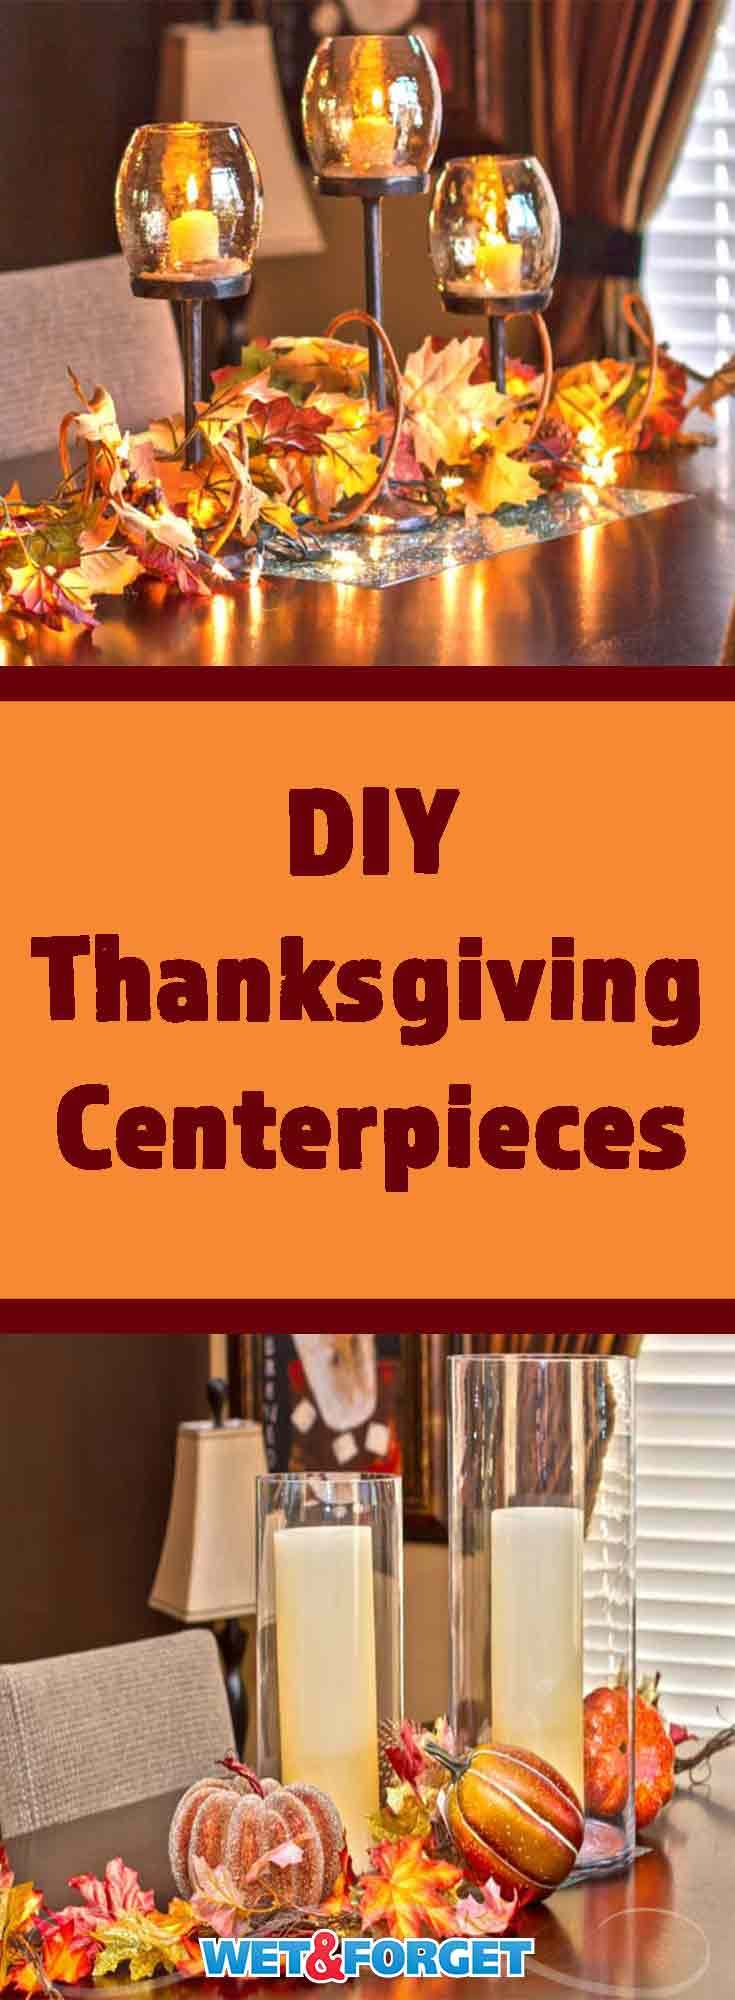 Are you decorating for Thanksgiving last minute? Use one of our quick and easy DIY Thanksgiving centerpiece ideas!